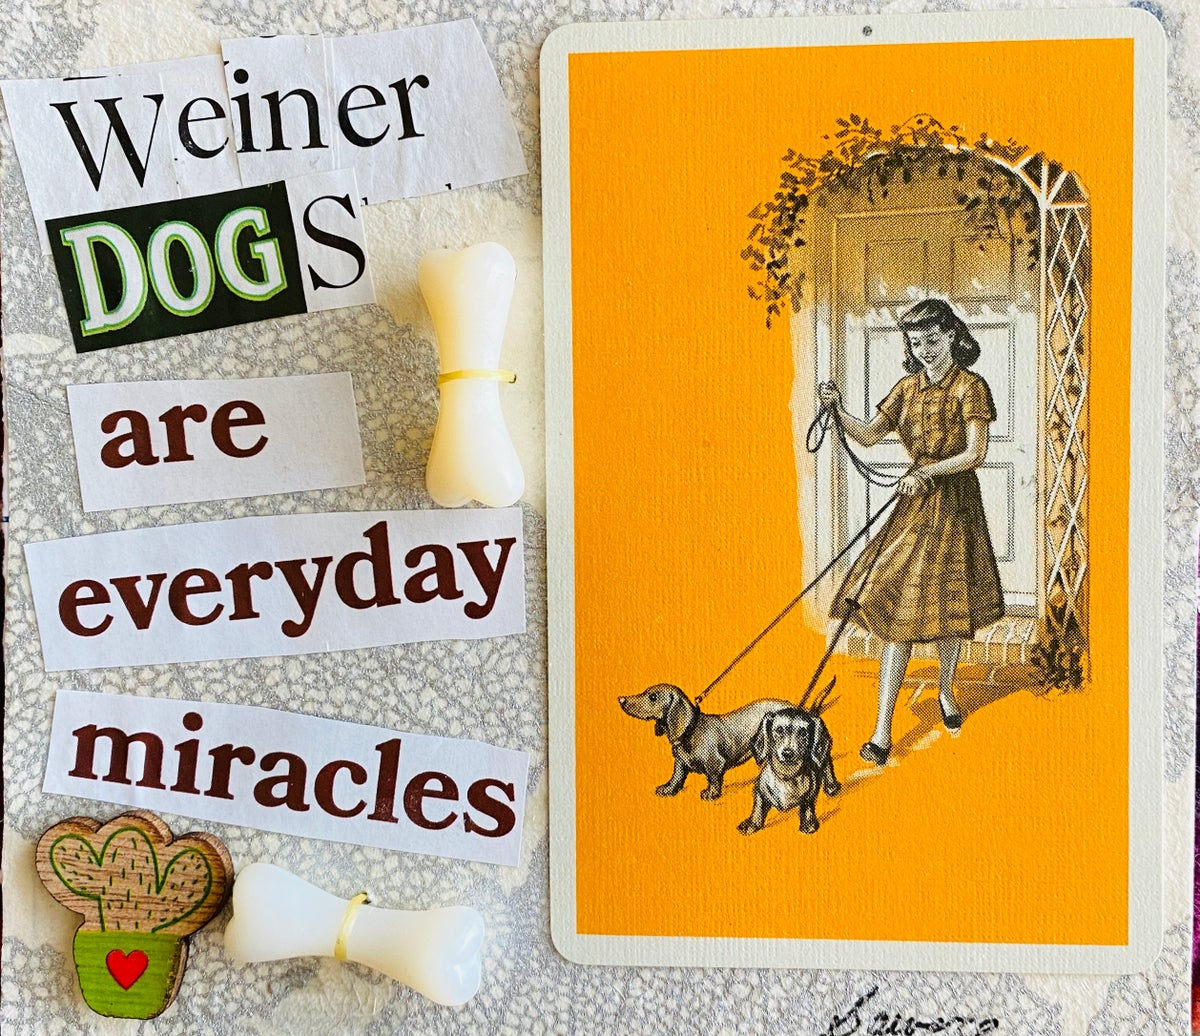 Weiner dogs are everyday miracles